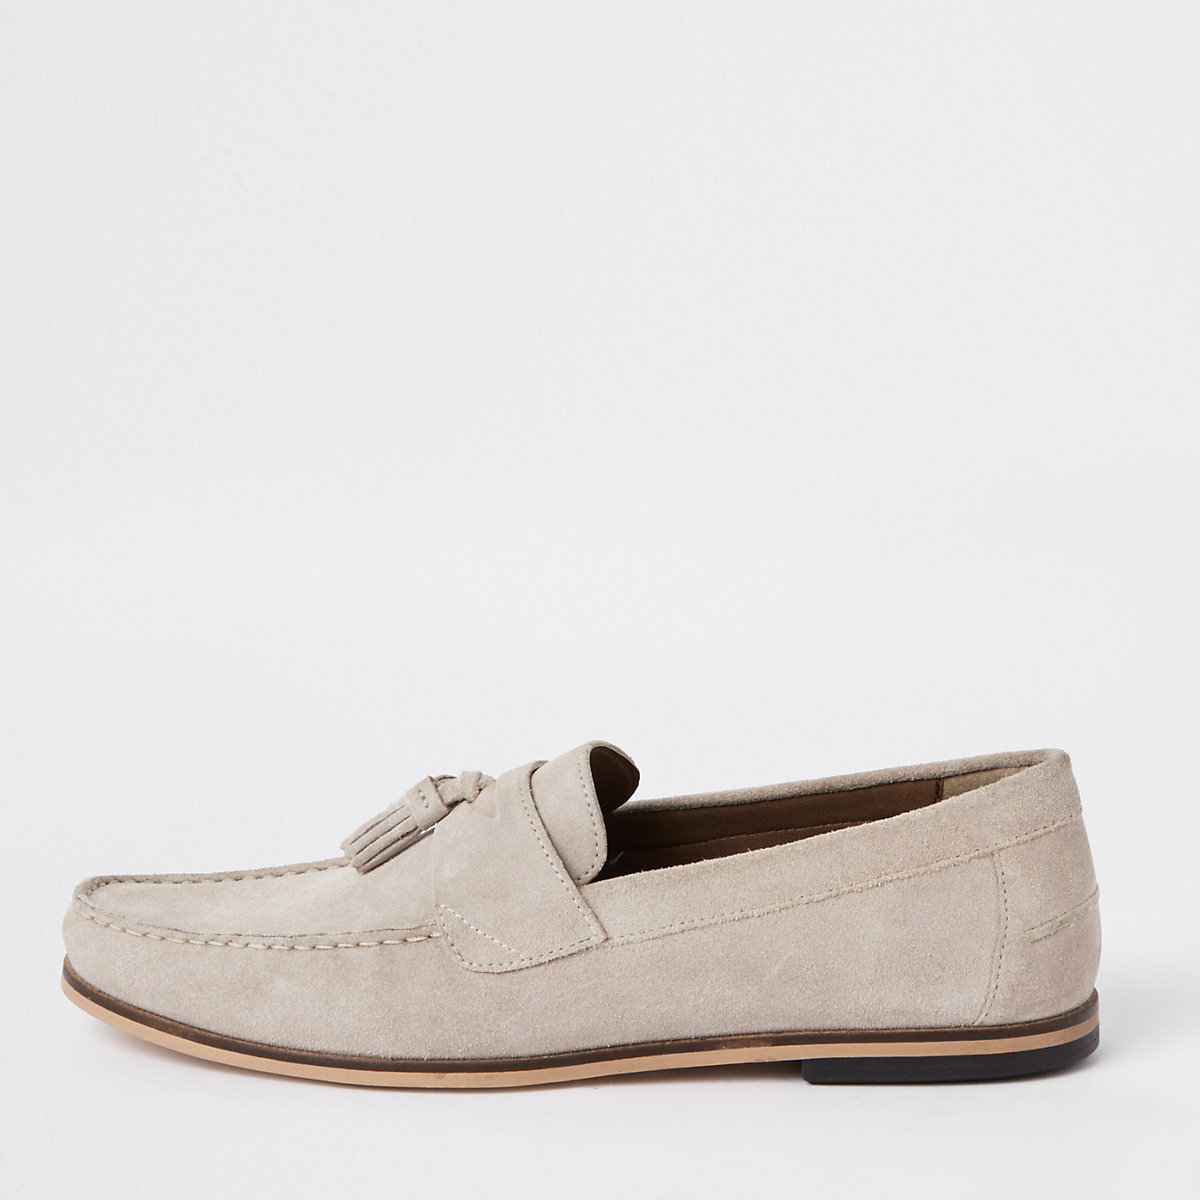 Stone suede tassel loafers